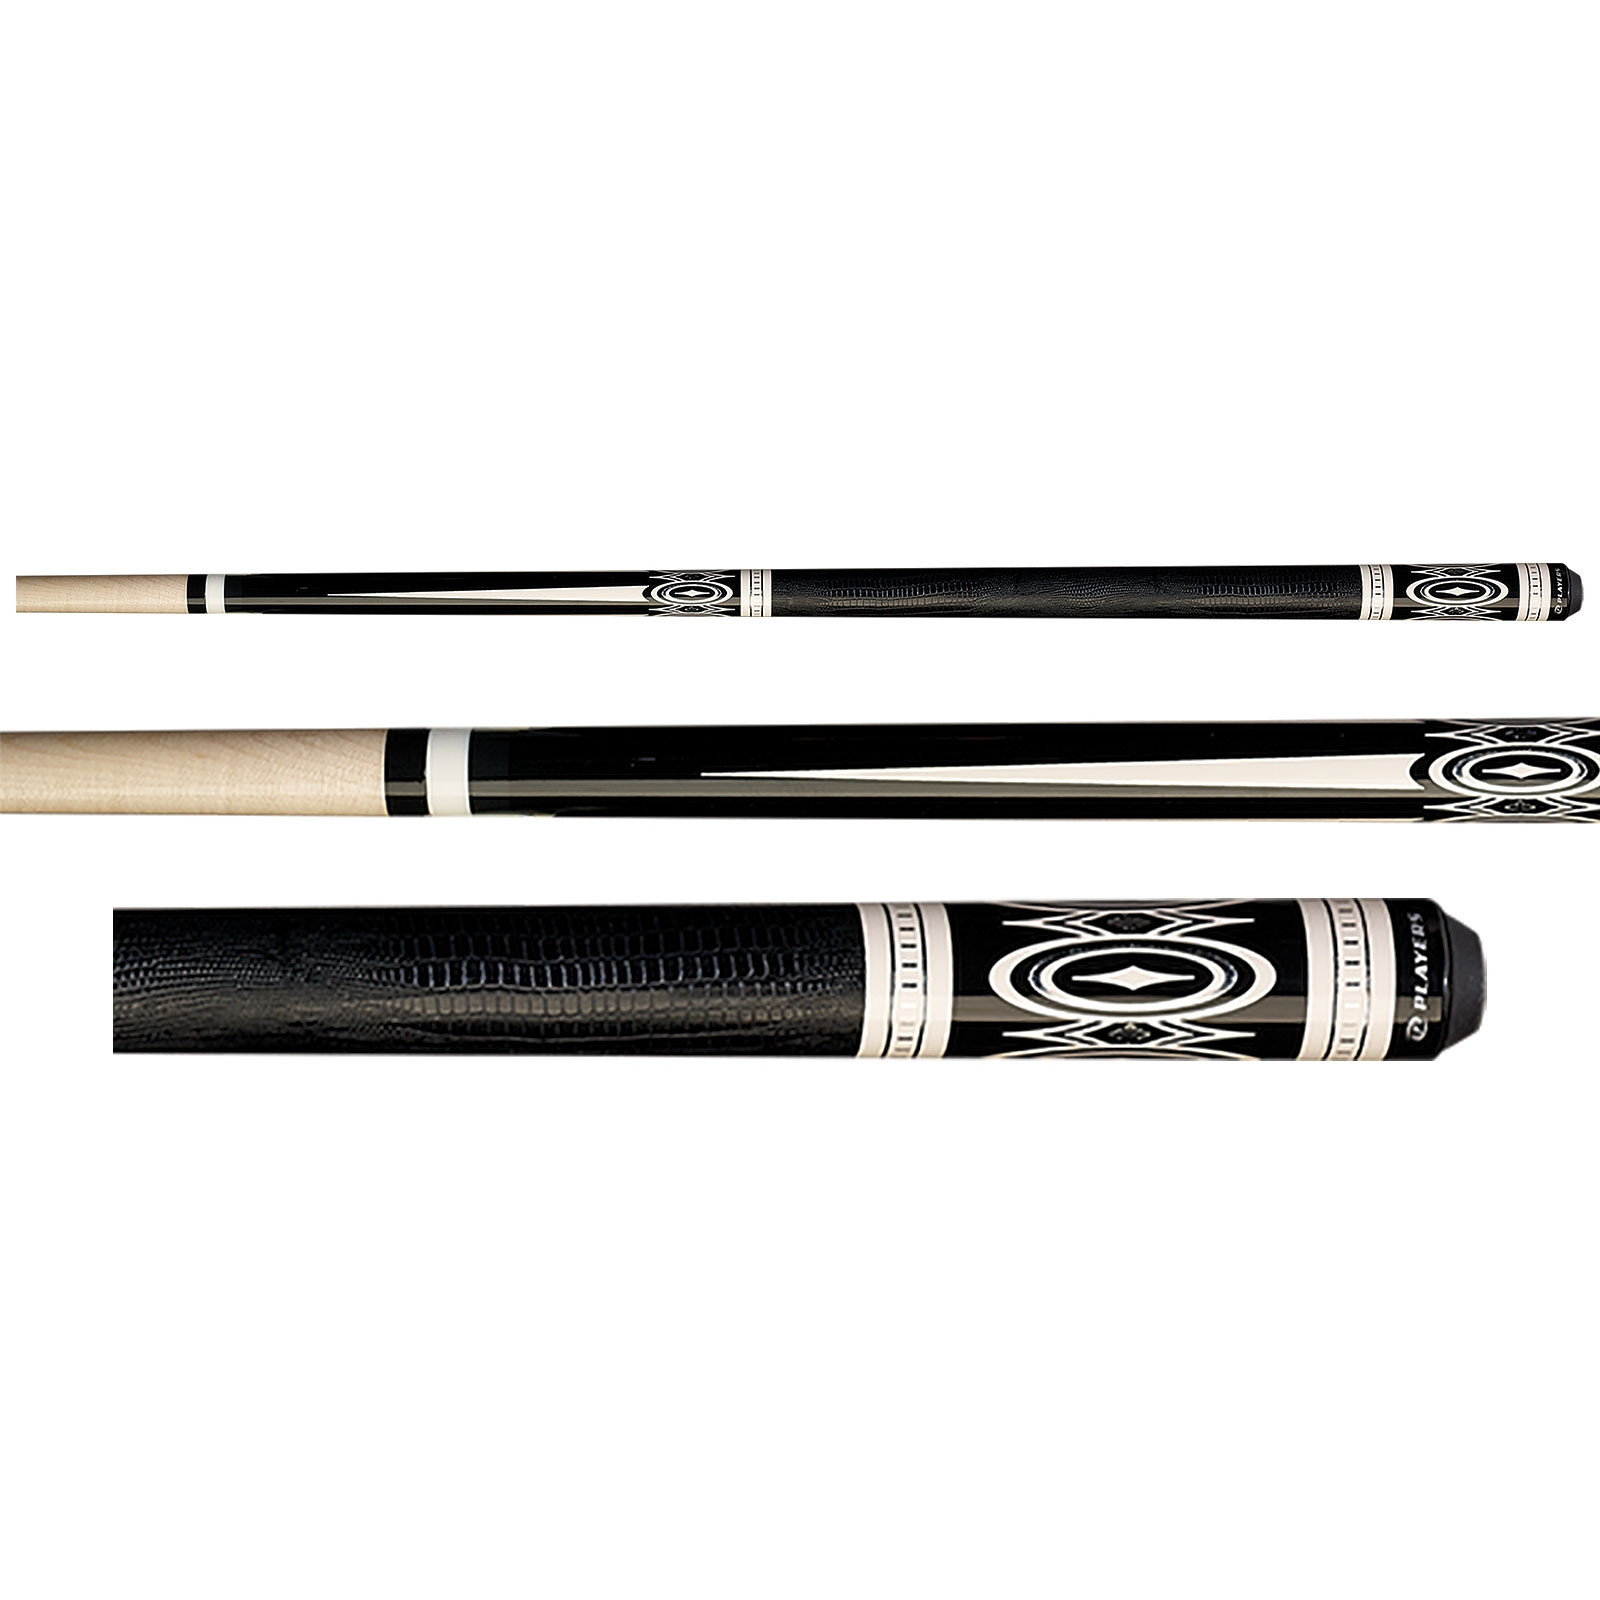 Players G-3398 Black Pool Cue Stick